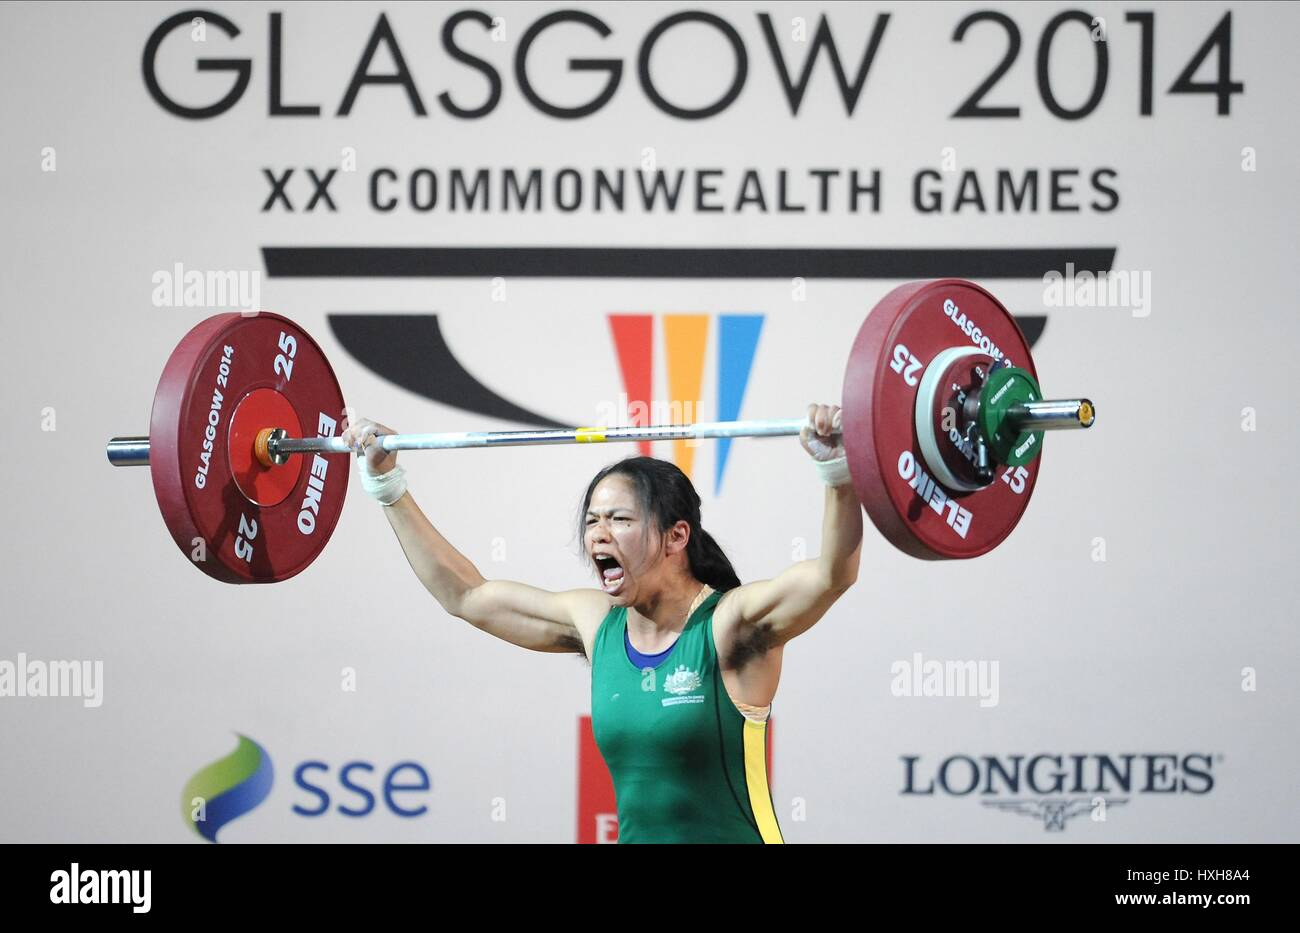 SEEN LEE WOMEN'S WEIGHTLIFTING WOMEN'S WEIGHTLIFTING CLYDE AUDITORIUM GLASGOW SCOTLAND 26 July 2014 - Stock Image